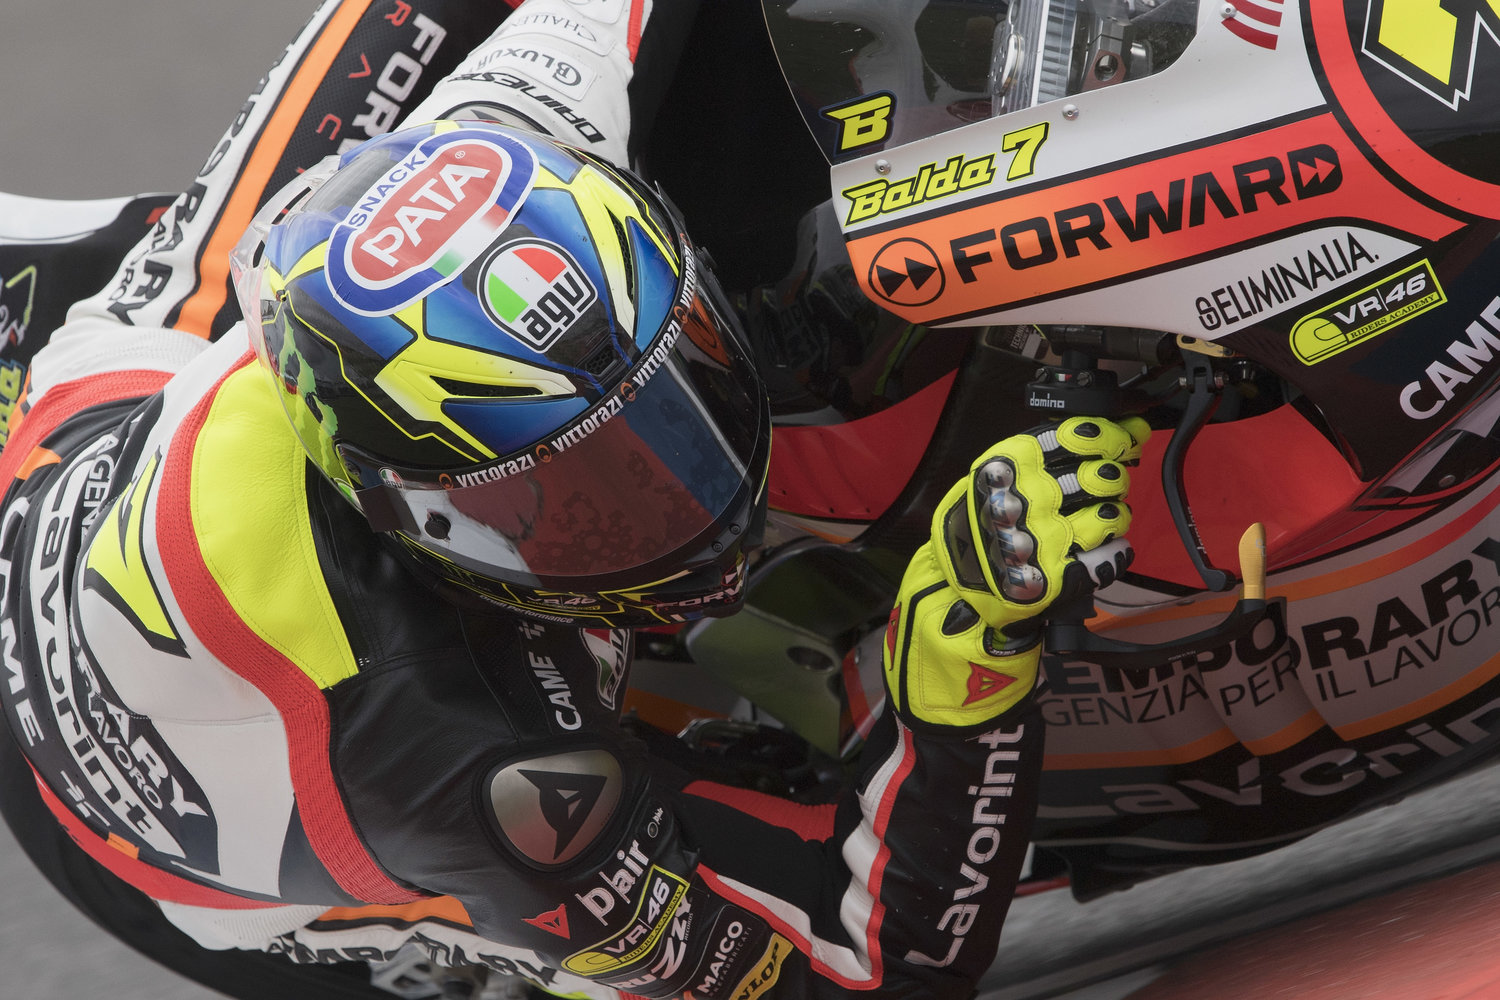 Baldassarri and Marini master difficult conditions to qualify on fourth row